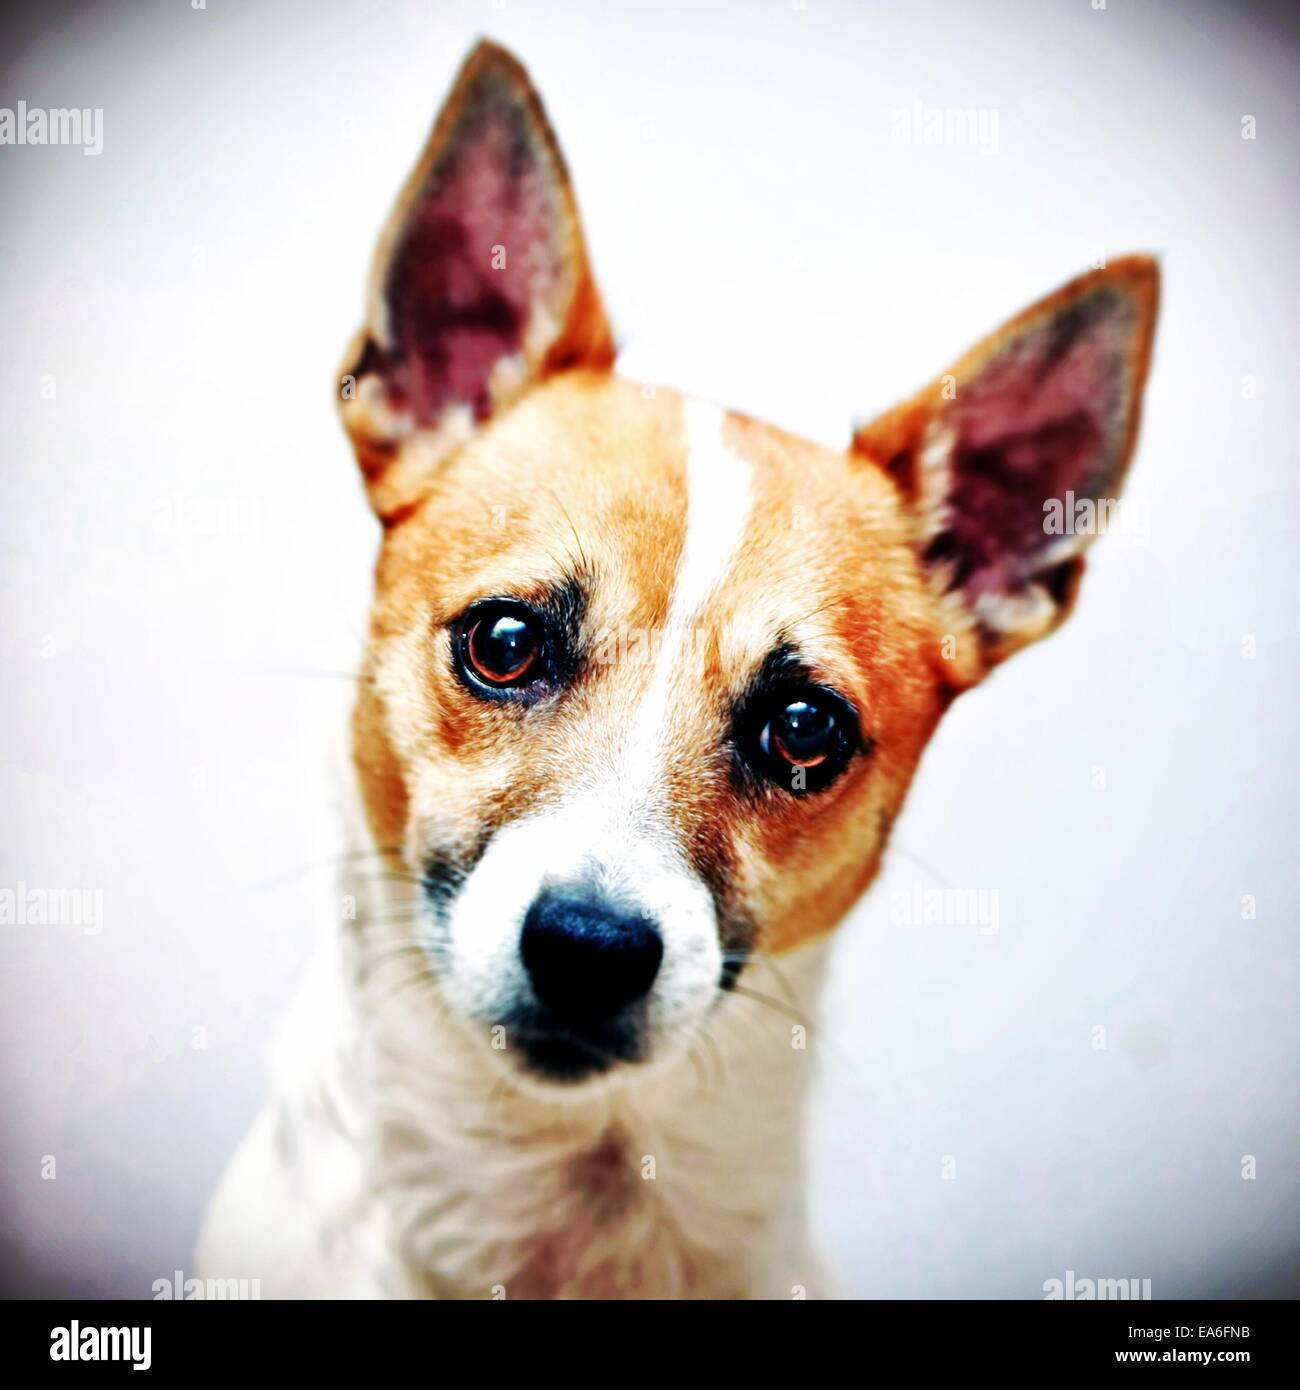 Jack Russell terrier dog head shot - Stock Image